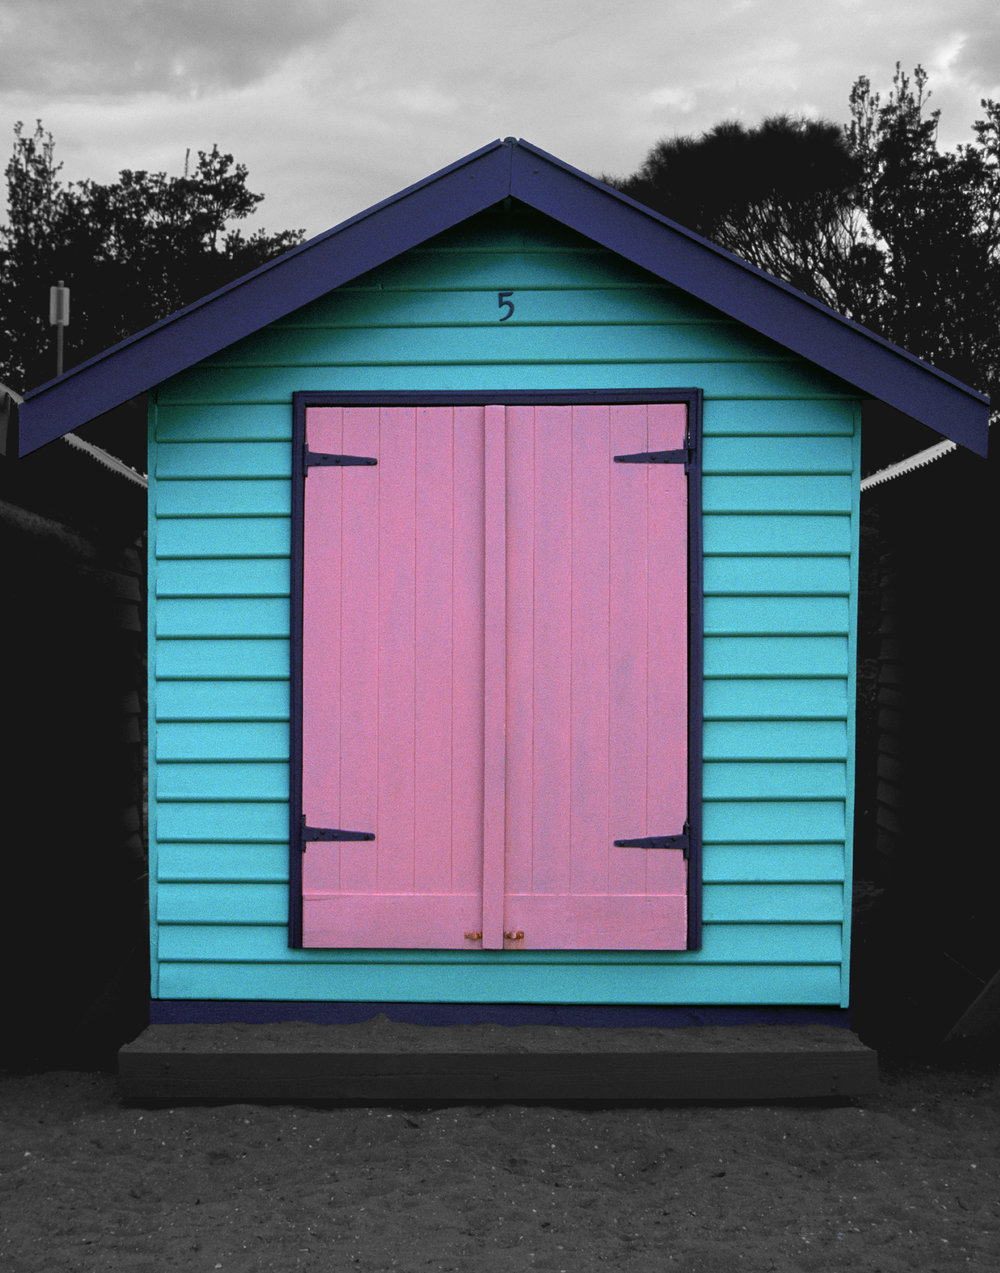 Judy Gelles,  Beach Box No. 5 , 2003  Digital pigment print, 8 x 10 in, edition of 20; 11 x 14 in, edition of 25; 16 x 20 in, edition of 25   Inquire